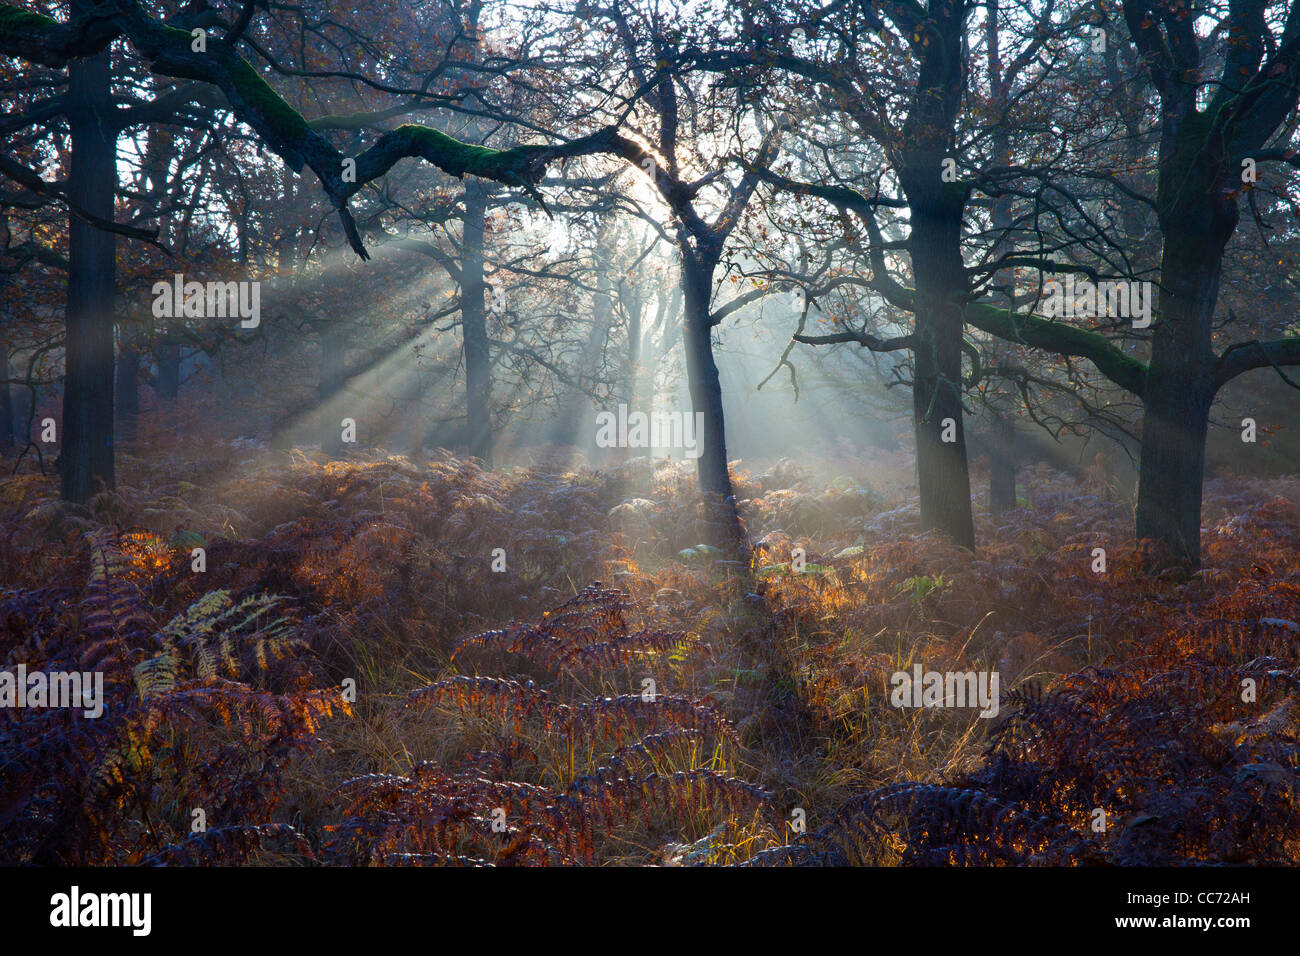 Common Oak (Quercus robur), Woodland with Bracken in Autumn Morning Mist, Reinhardwald, North Hessen, Germany - Stock Image